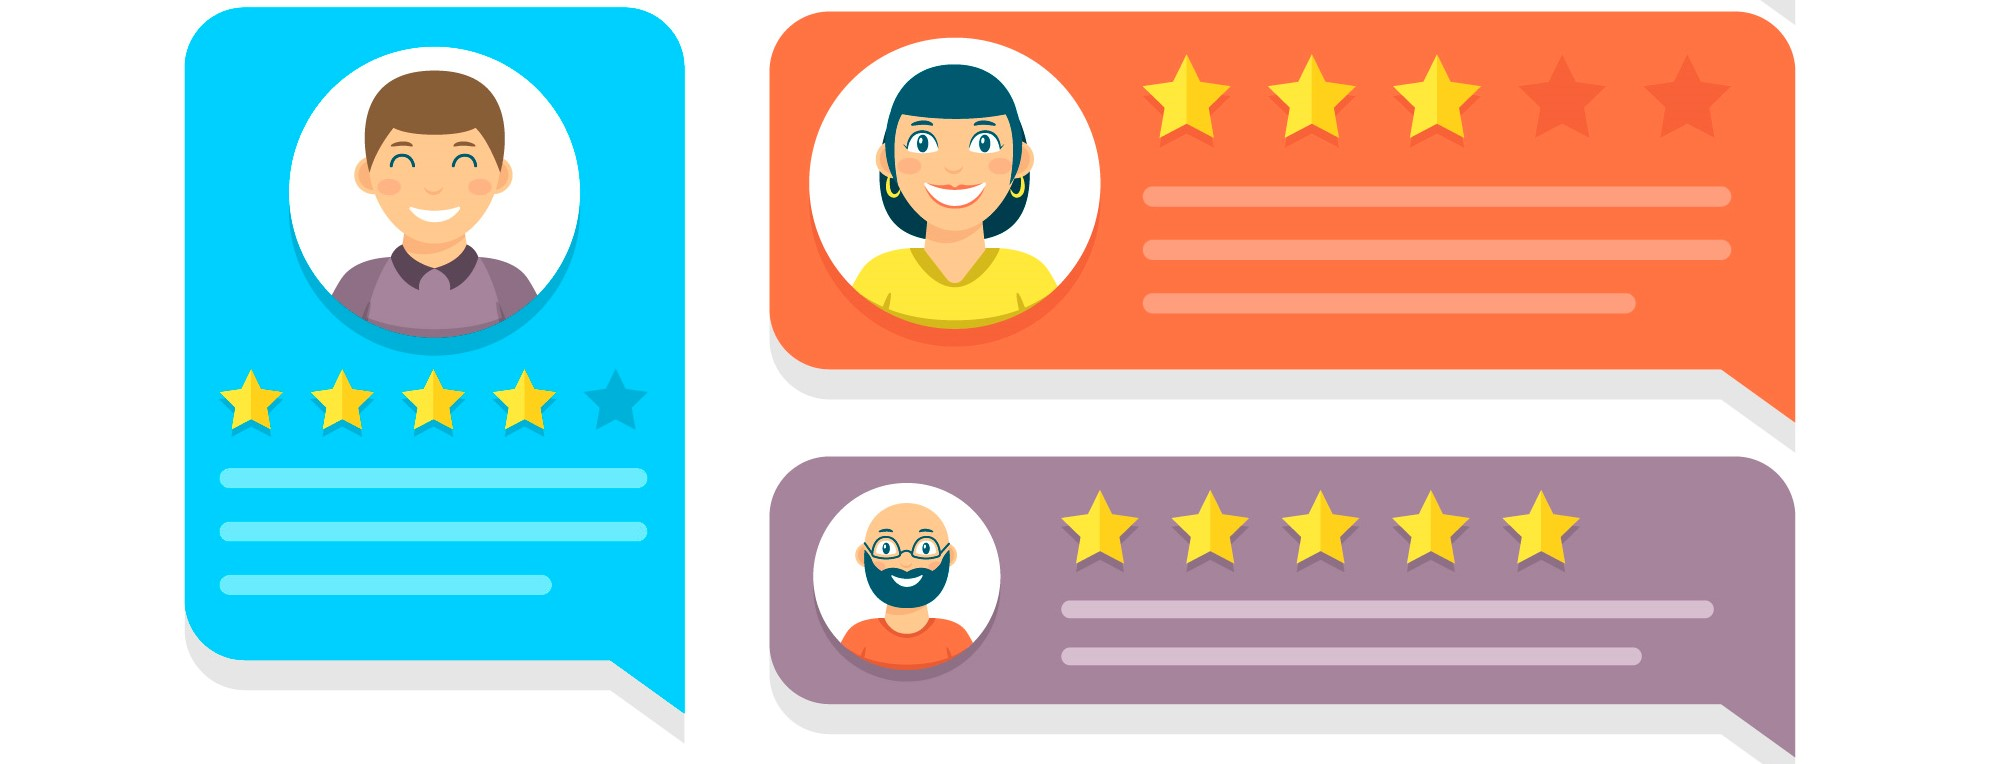 change the way testimonials in quotes are displayed